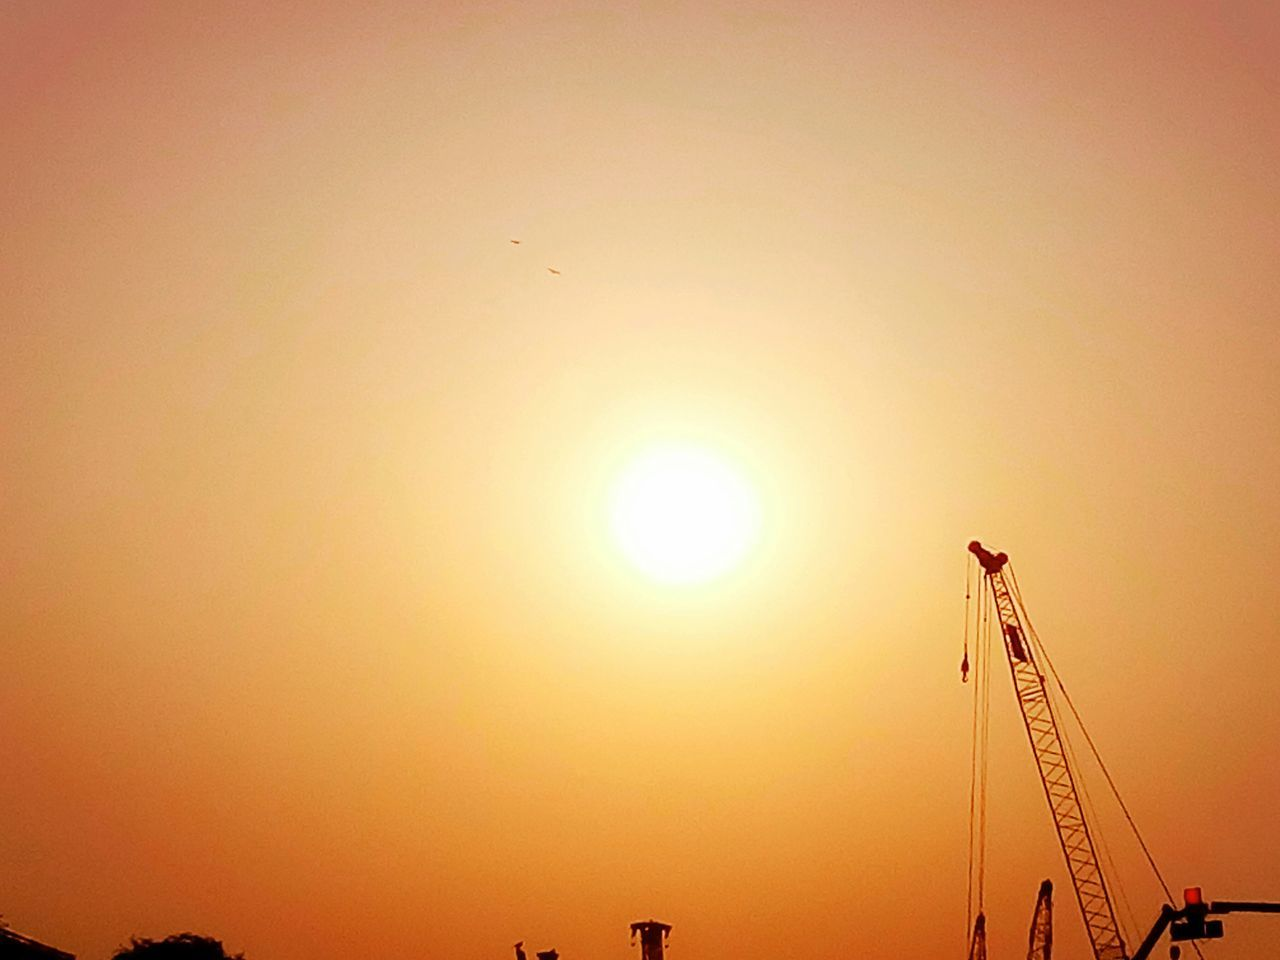 sunset, sun, orange color, sunlight, development, silhouette, outdoors, sky, no people, crane, nature, low angle view, beauty in nature, architecture, scenics, progress, clear sky, industry, day